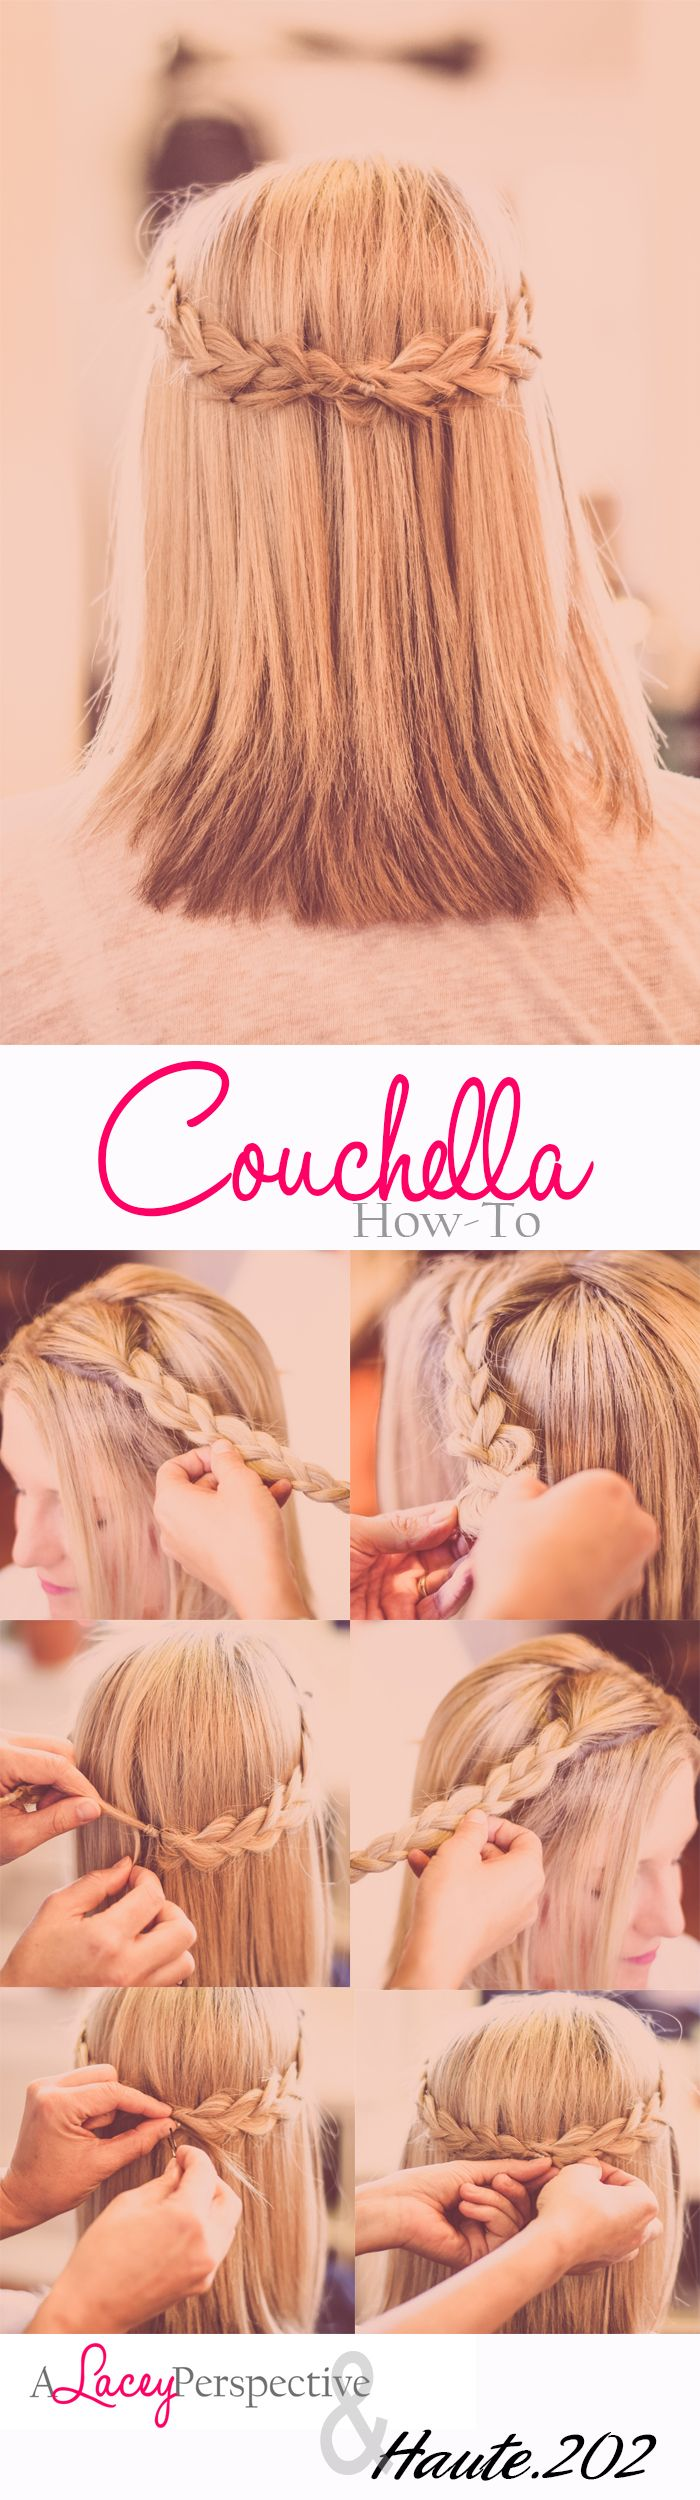 Sitting on your coach instead of being at Coachella? Then you need this Couchella hair how to...